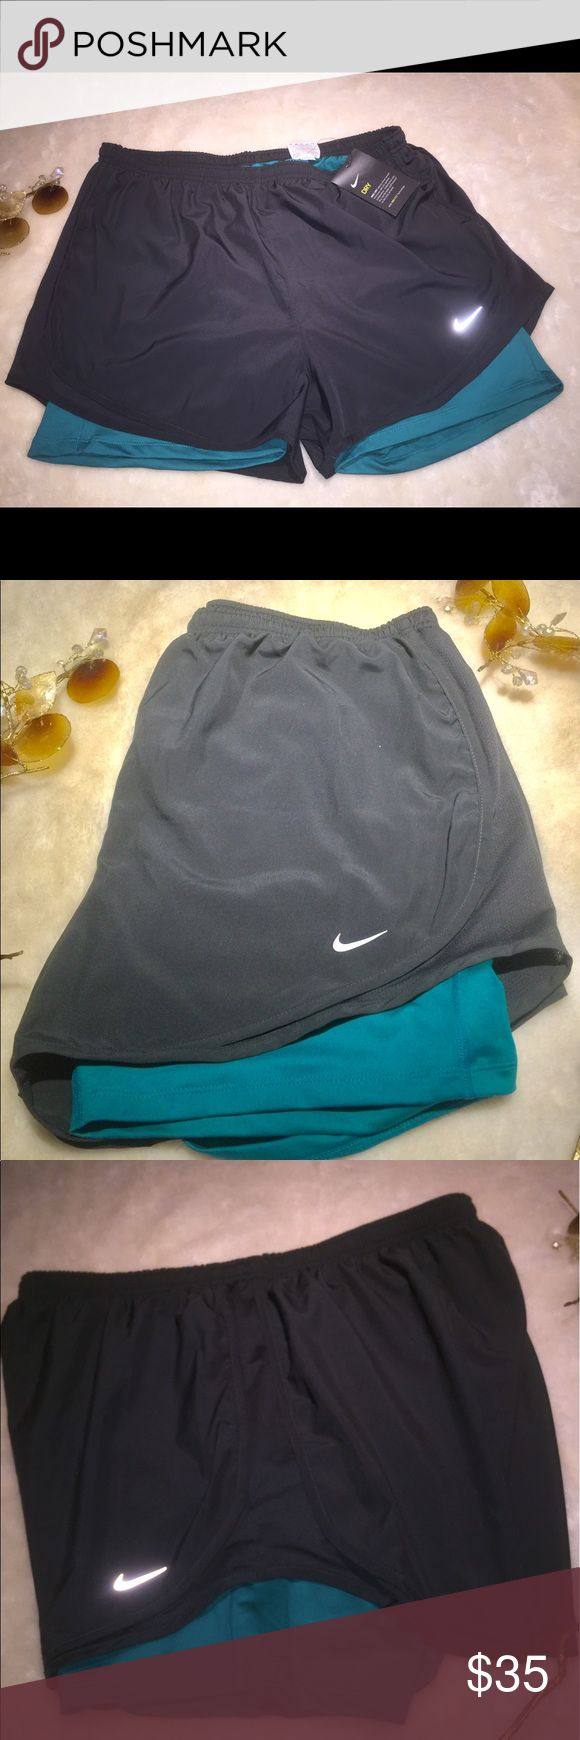 Woman's NWT Nike Dri Fit Jogger Shorts XL New With Tags Woman's Nike  Shorts Size XLarge  Gray Shorts with Teal Shorts Underneath  Dri Fit  Keeps you Dry & Cool Nike Shorts